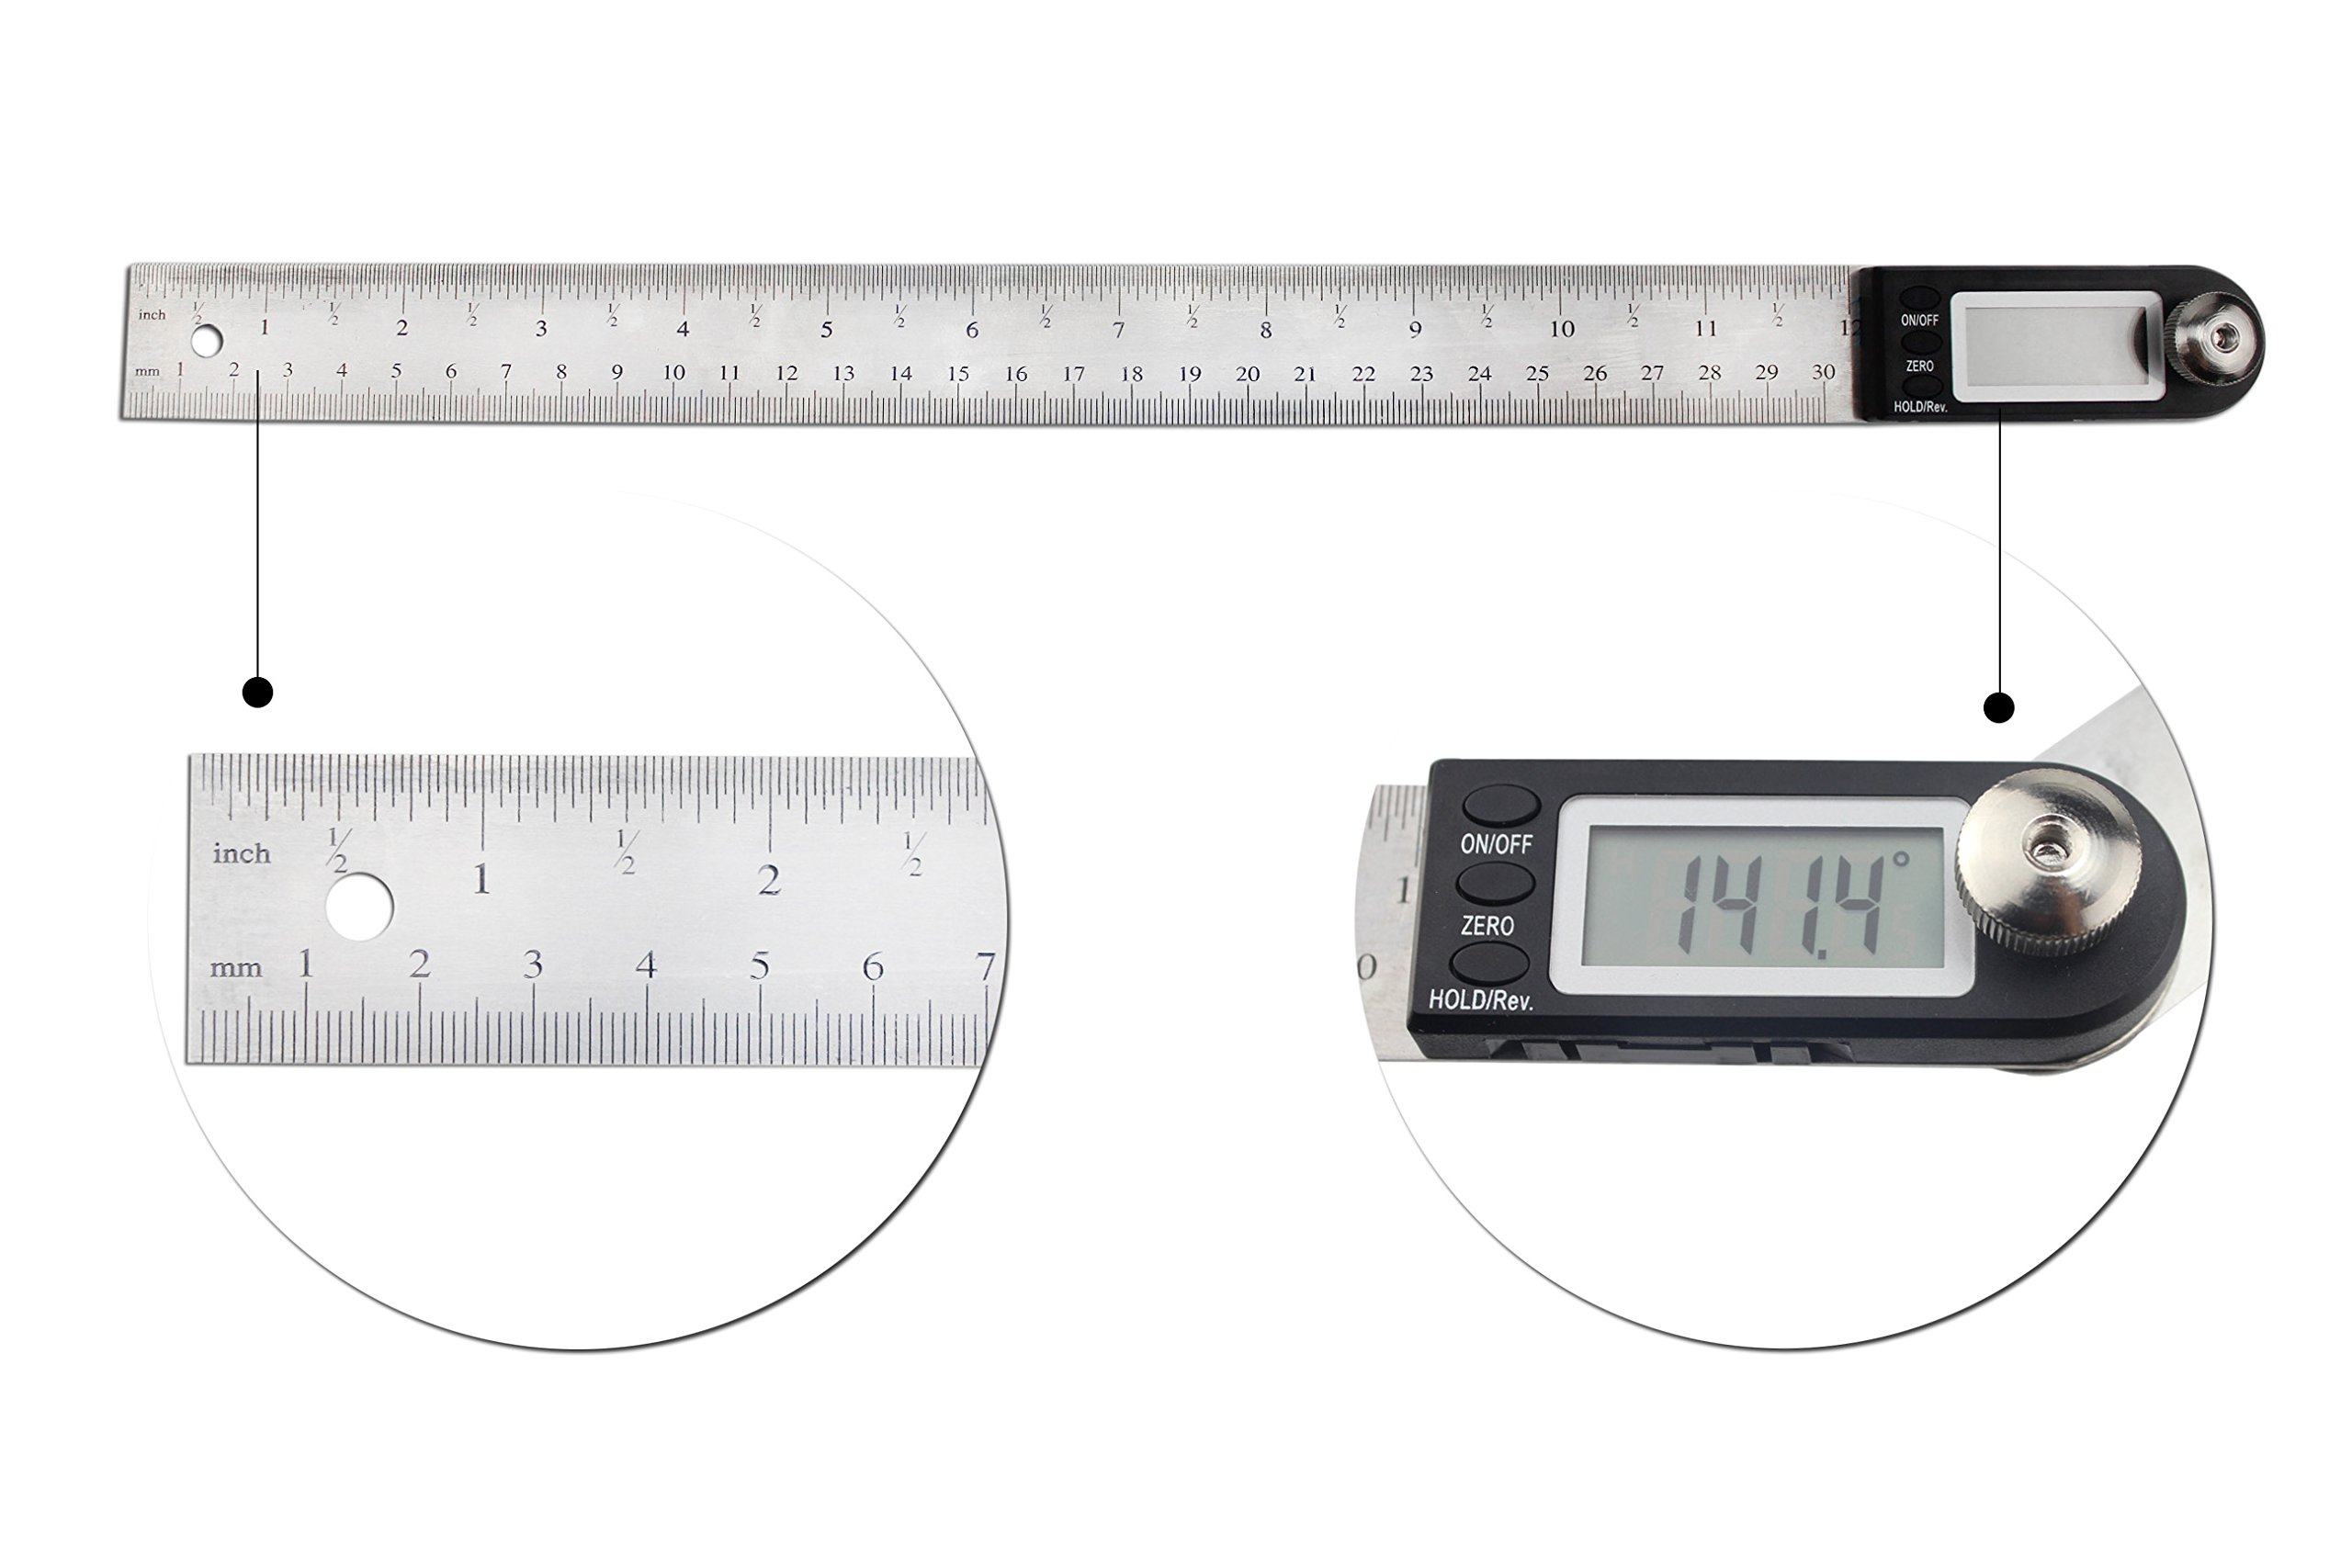 Angle Finder Electronic Protractor, STARRICH Digital Goniometer Miter Gauge Ruler (12inch/300mm)